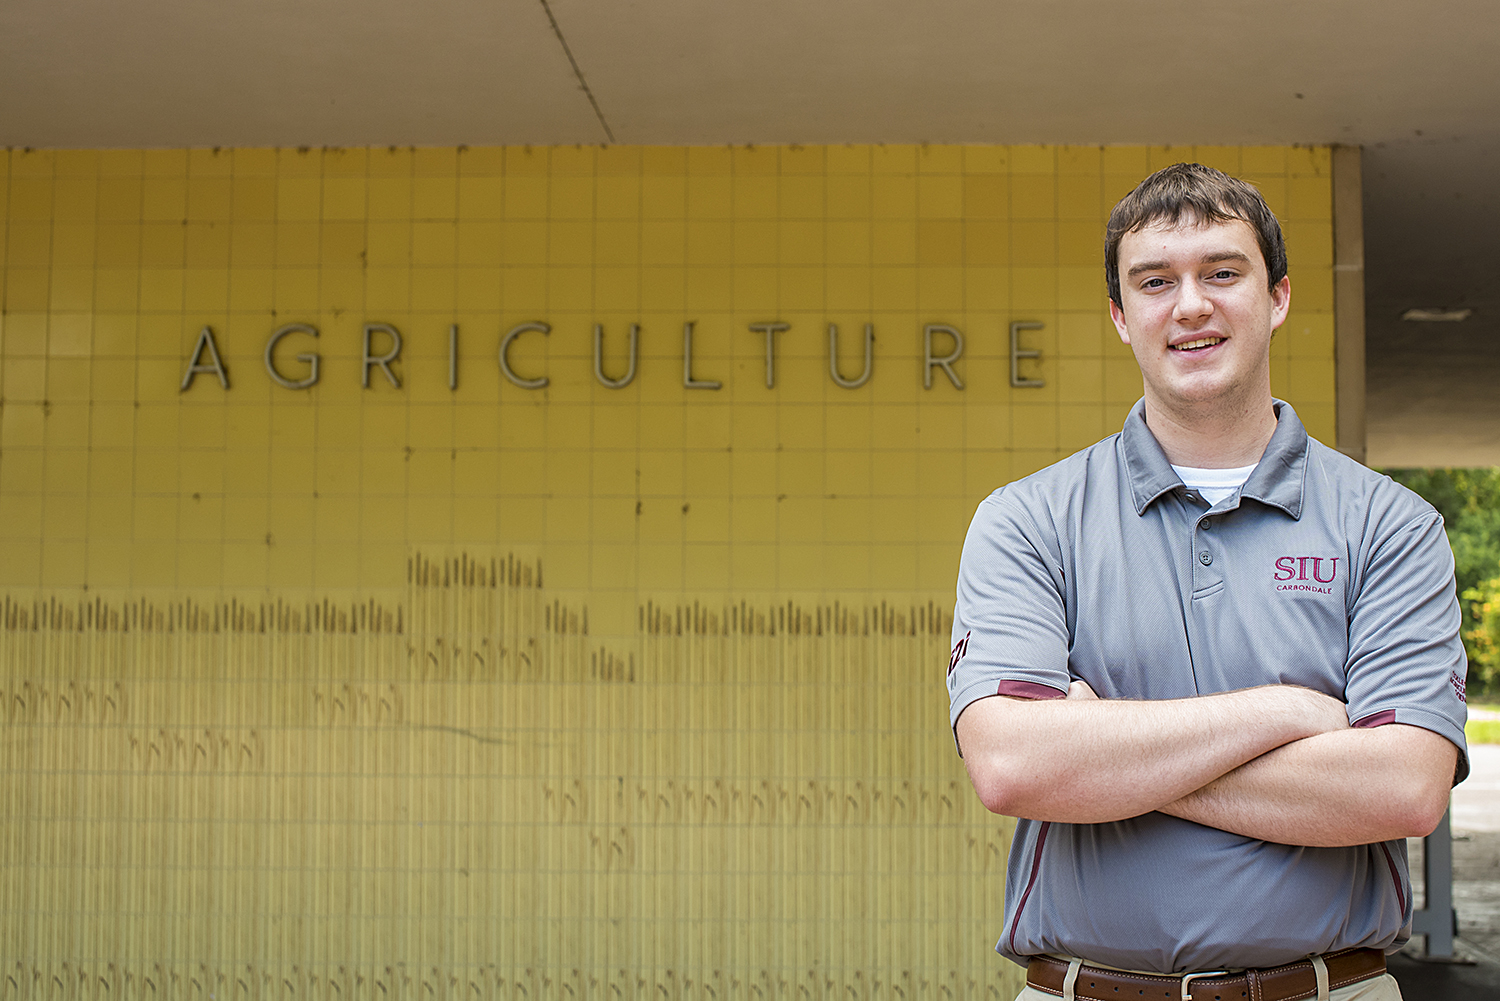 Paxton Morse, freshman at SIU College of Agricultural Sciences